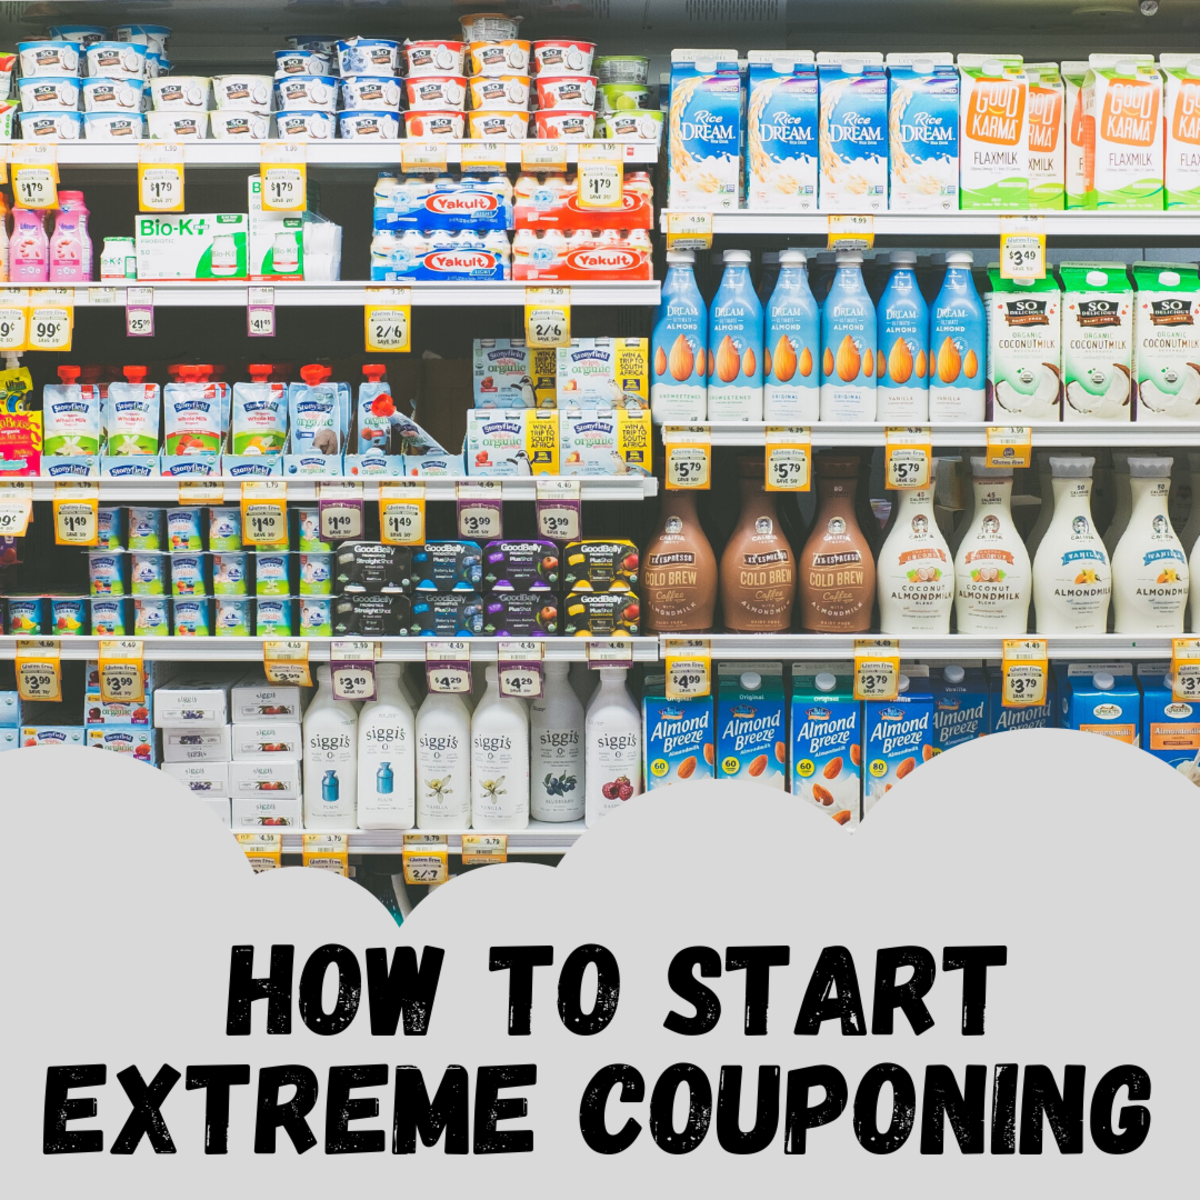 How to Start Extreme Couponing for Beginners